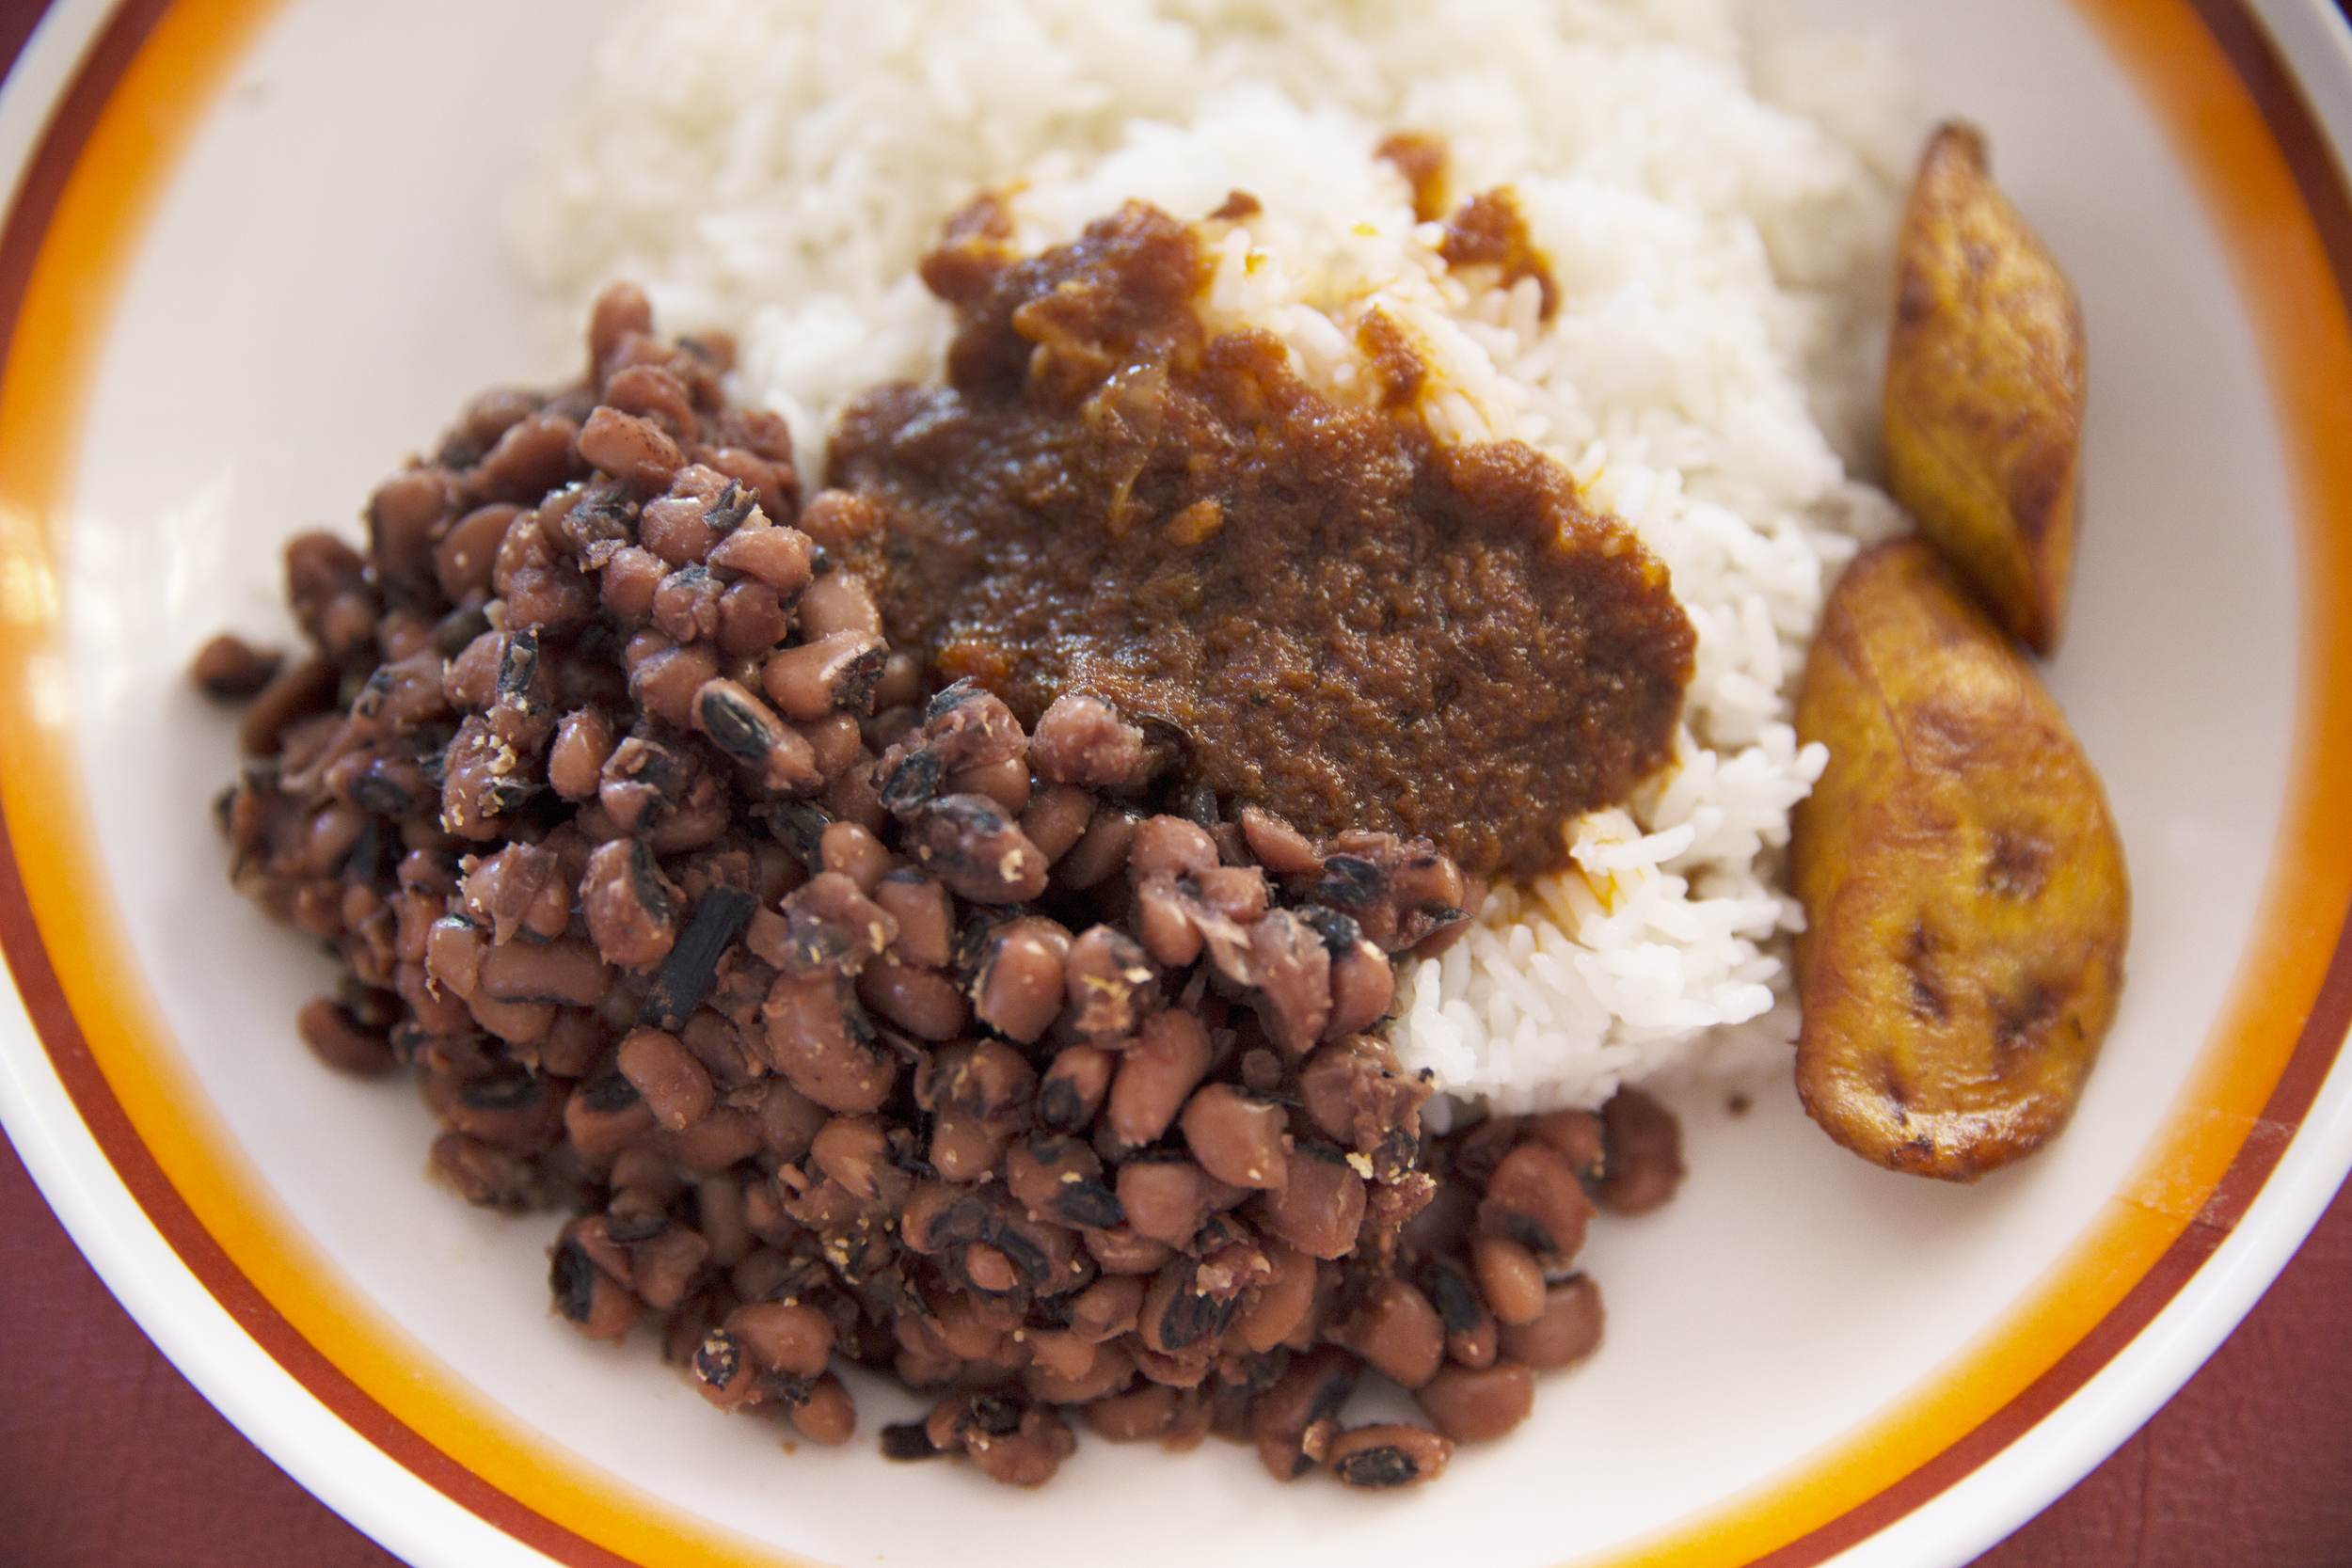 My meal of rice, beans, fried plantains,and a spicy sauce.